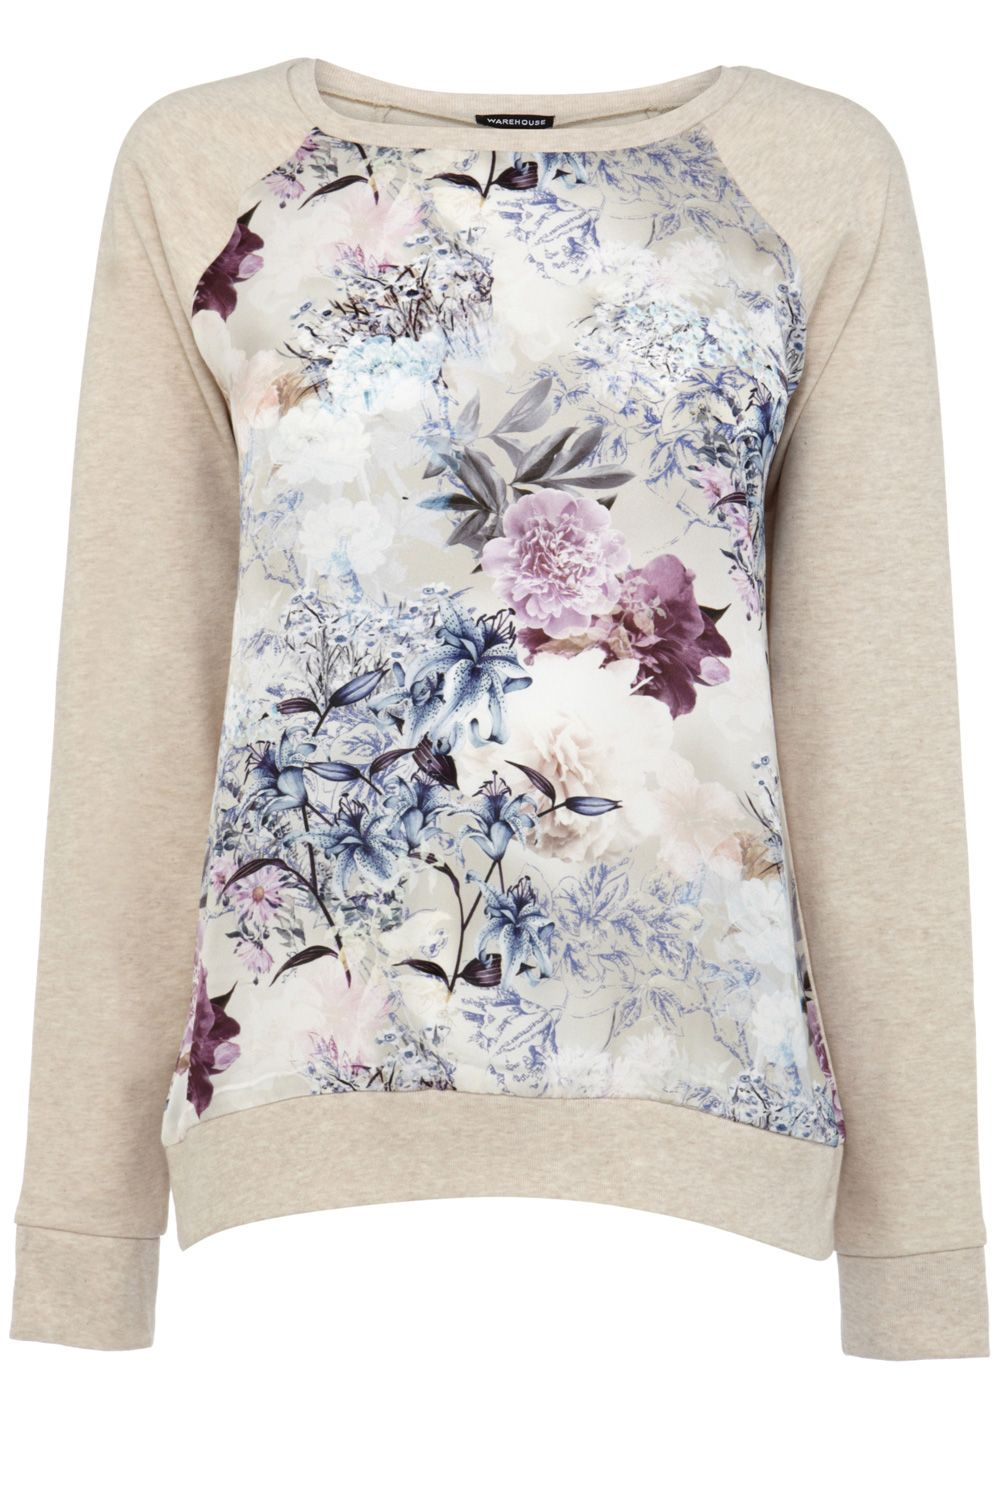 Winter floral print sweat